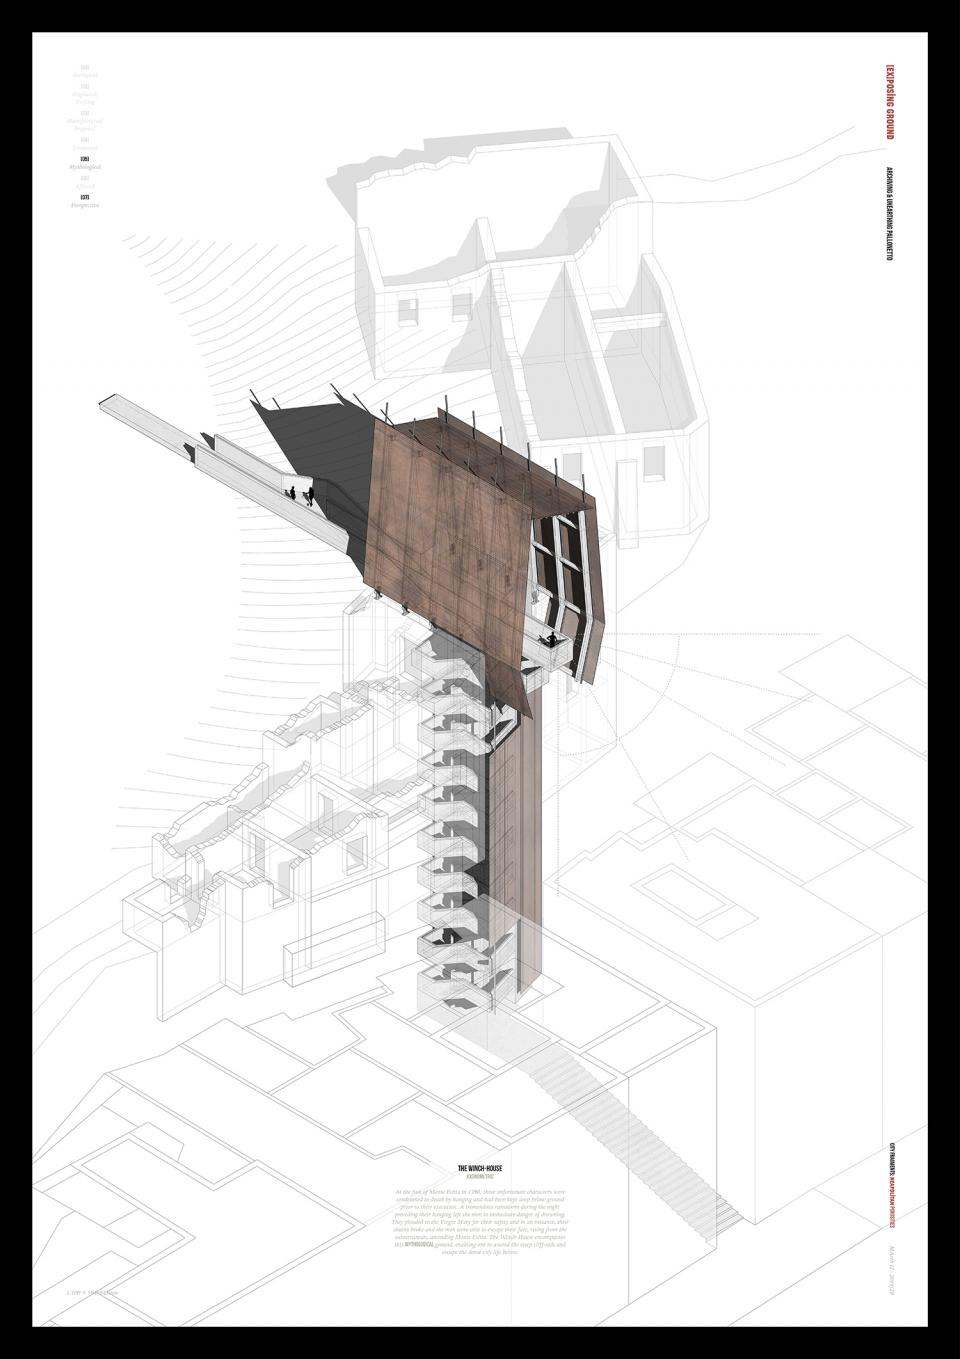 Alexander Ronse_Architecture - MArch_2020_[Ex]Posing Ground - Archiving _ Unearthing Pallonetto_2_0.jpg